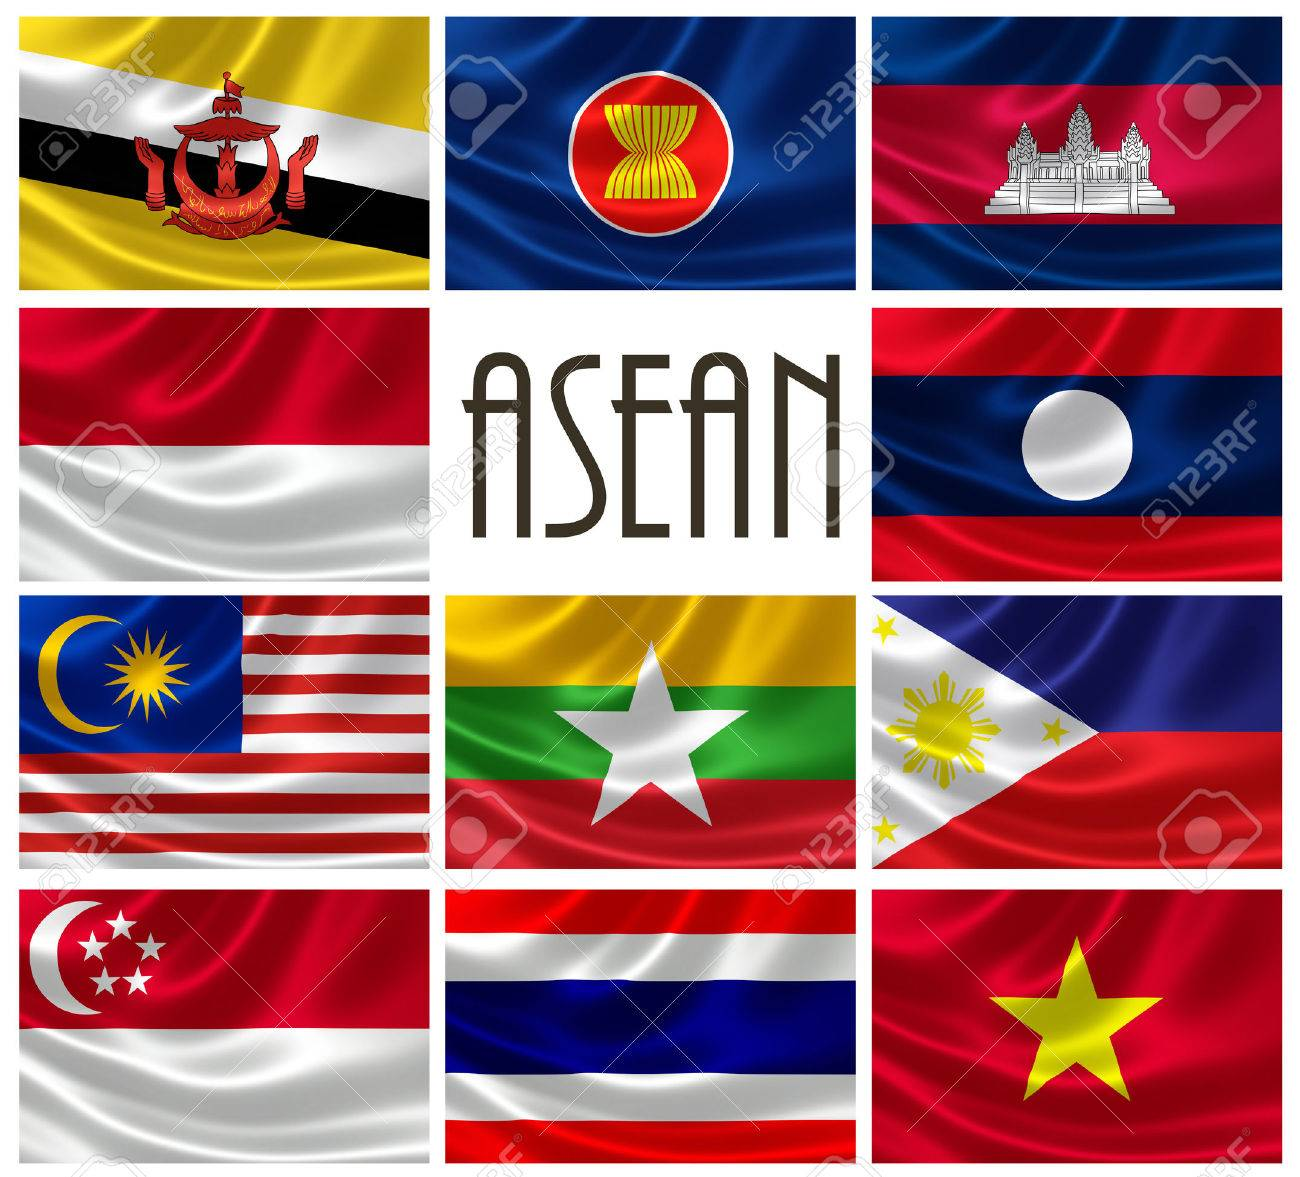 Image result for Cambodia in ASEAN